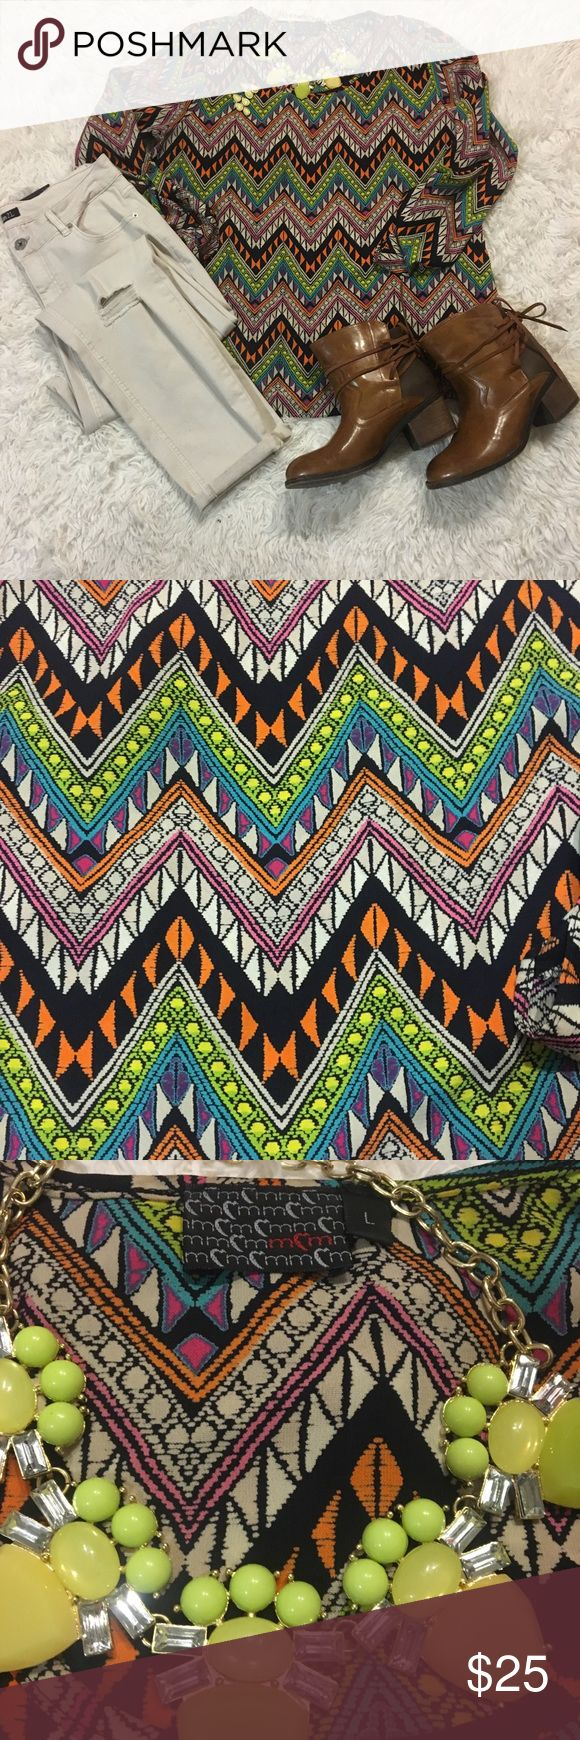 "Moa Moa Chevron Top Multi color chevron top with navy blue background is like NEW!  Measurements: Armpit- Armpit 21"" Back neckline to bottom hemline 26.5"" Goes great with a favorite pair of jeans, shorts, or skirt! Moa Moa Tops"